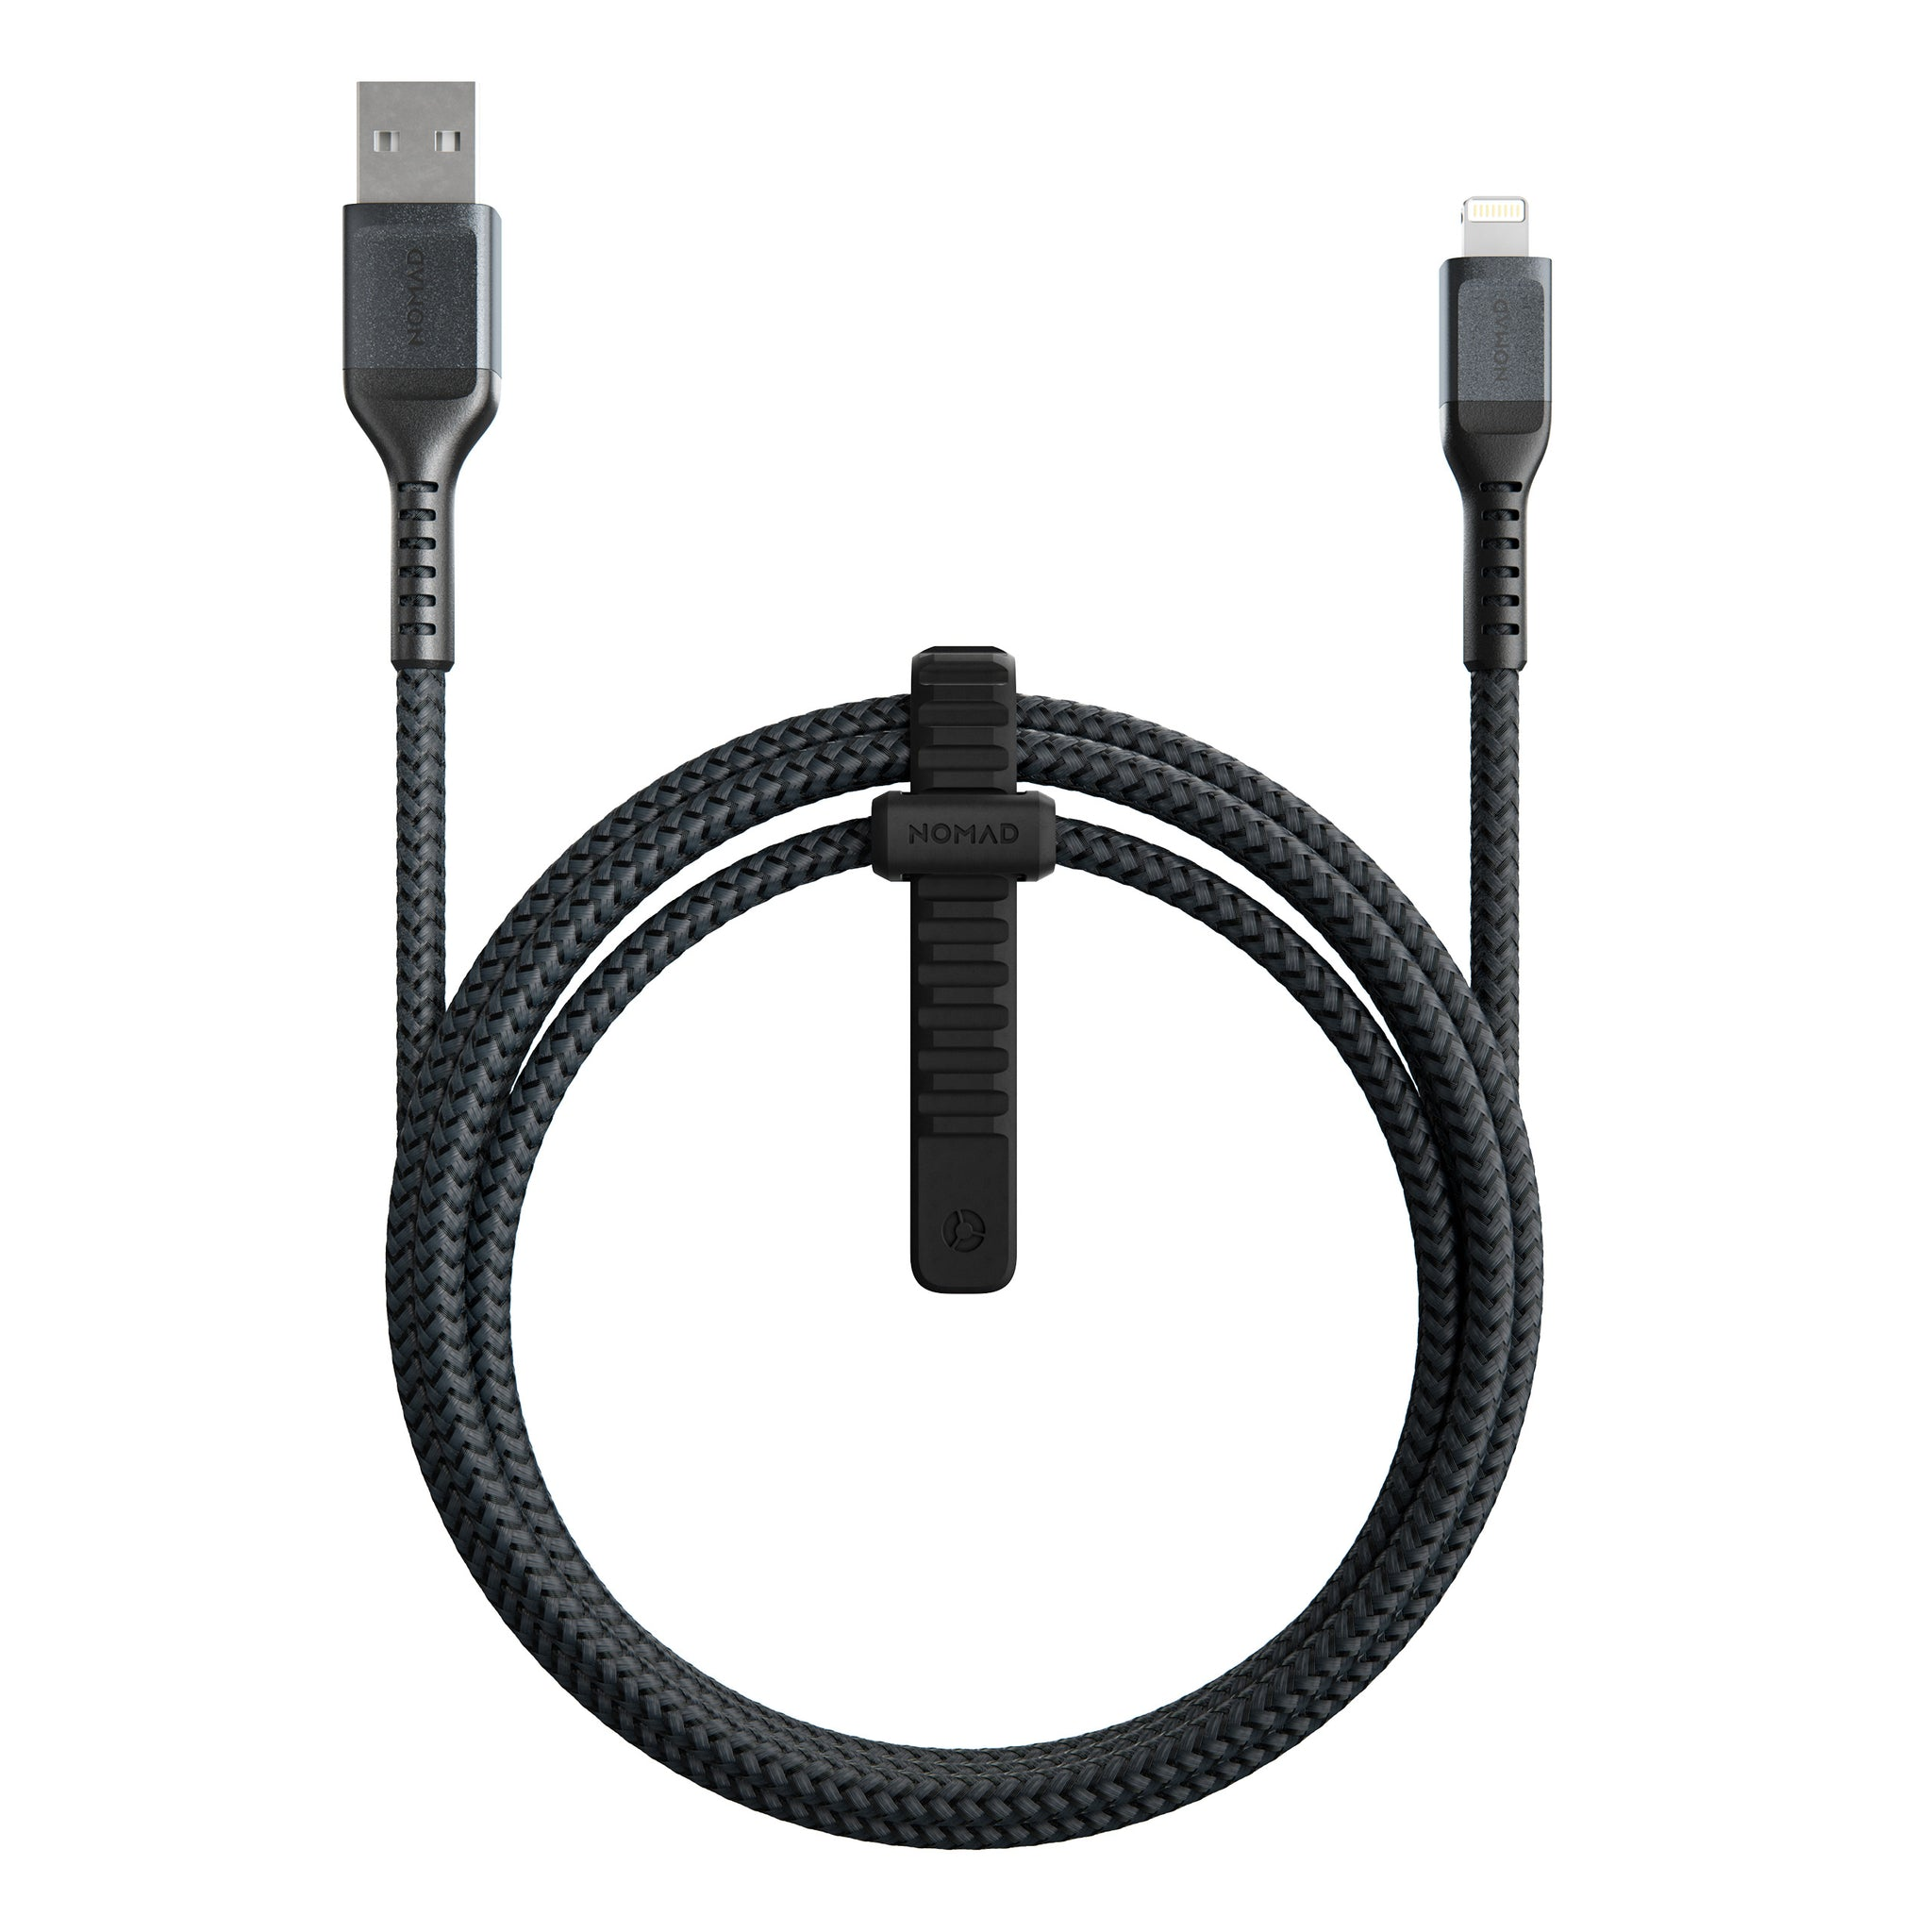 Nomad USB to Lightning Cable with Kevlar® - 1.5m